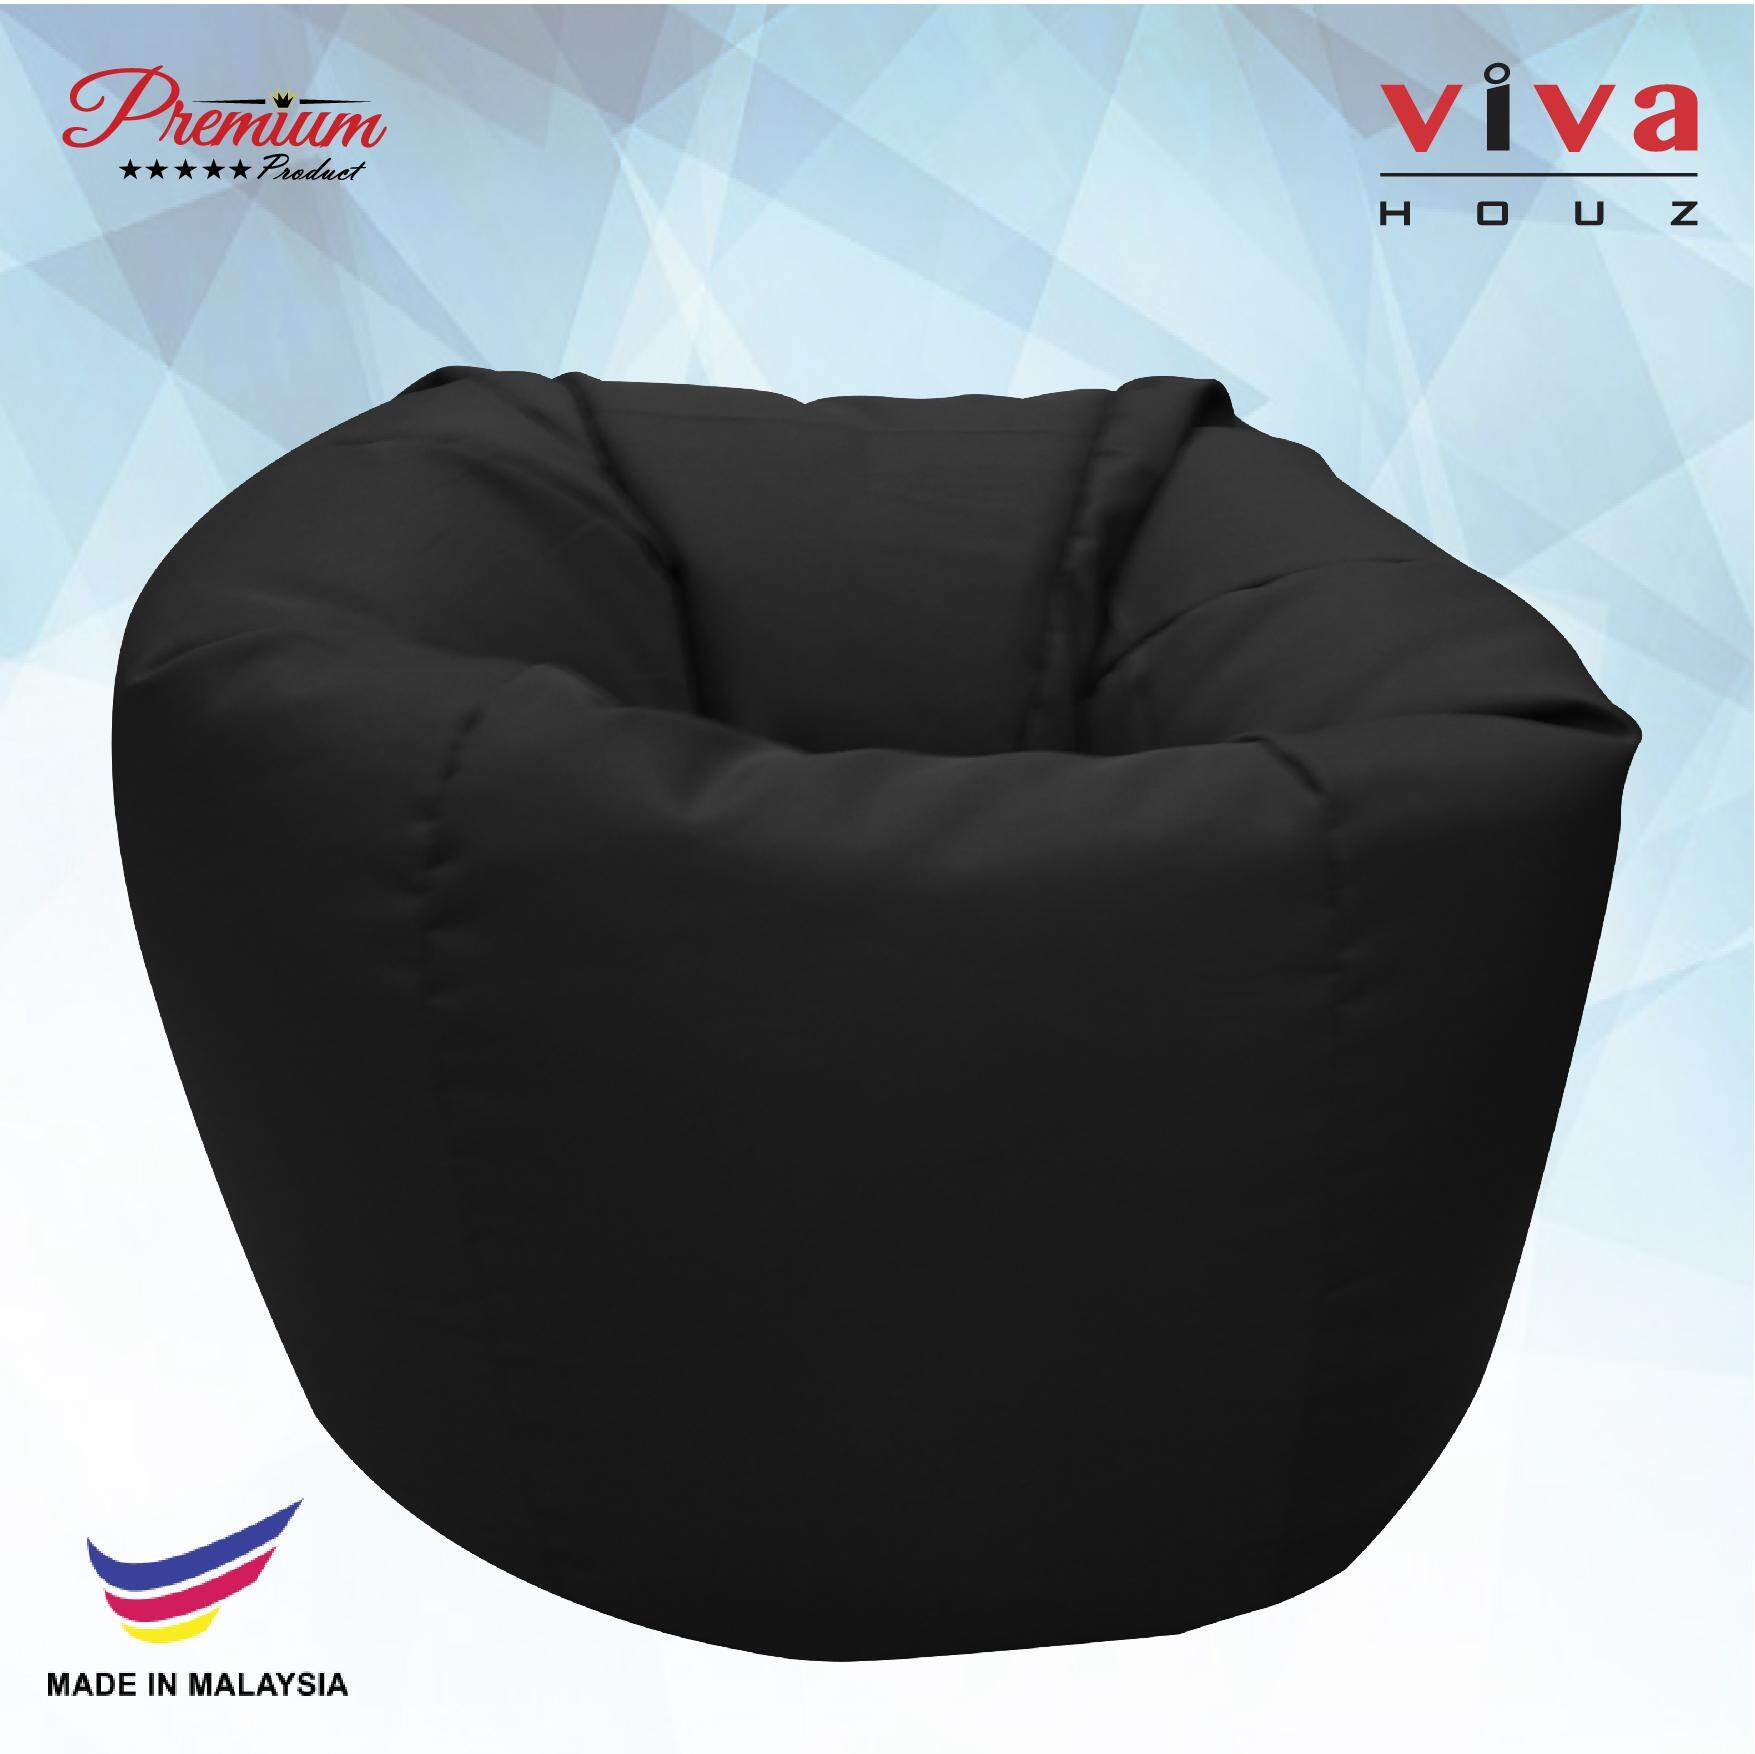 Sofa Bed Giant Malaysia Viva Houz Happy Bean Bag Sofa Pouffe Chair Xl Size Black Made In Malaysia